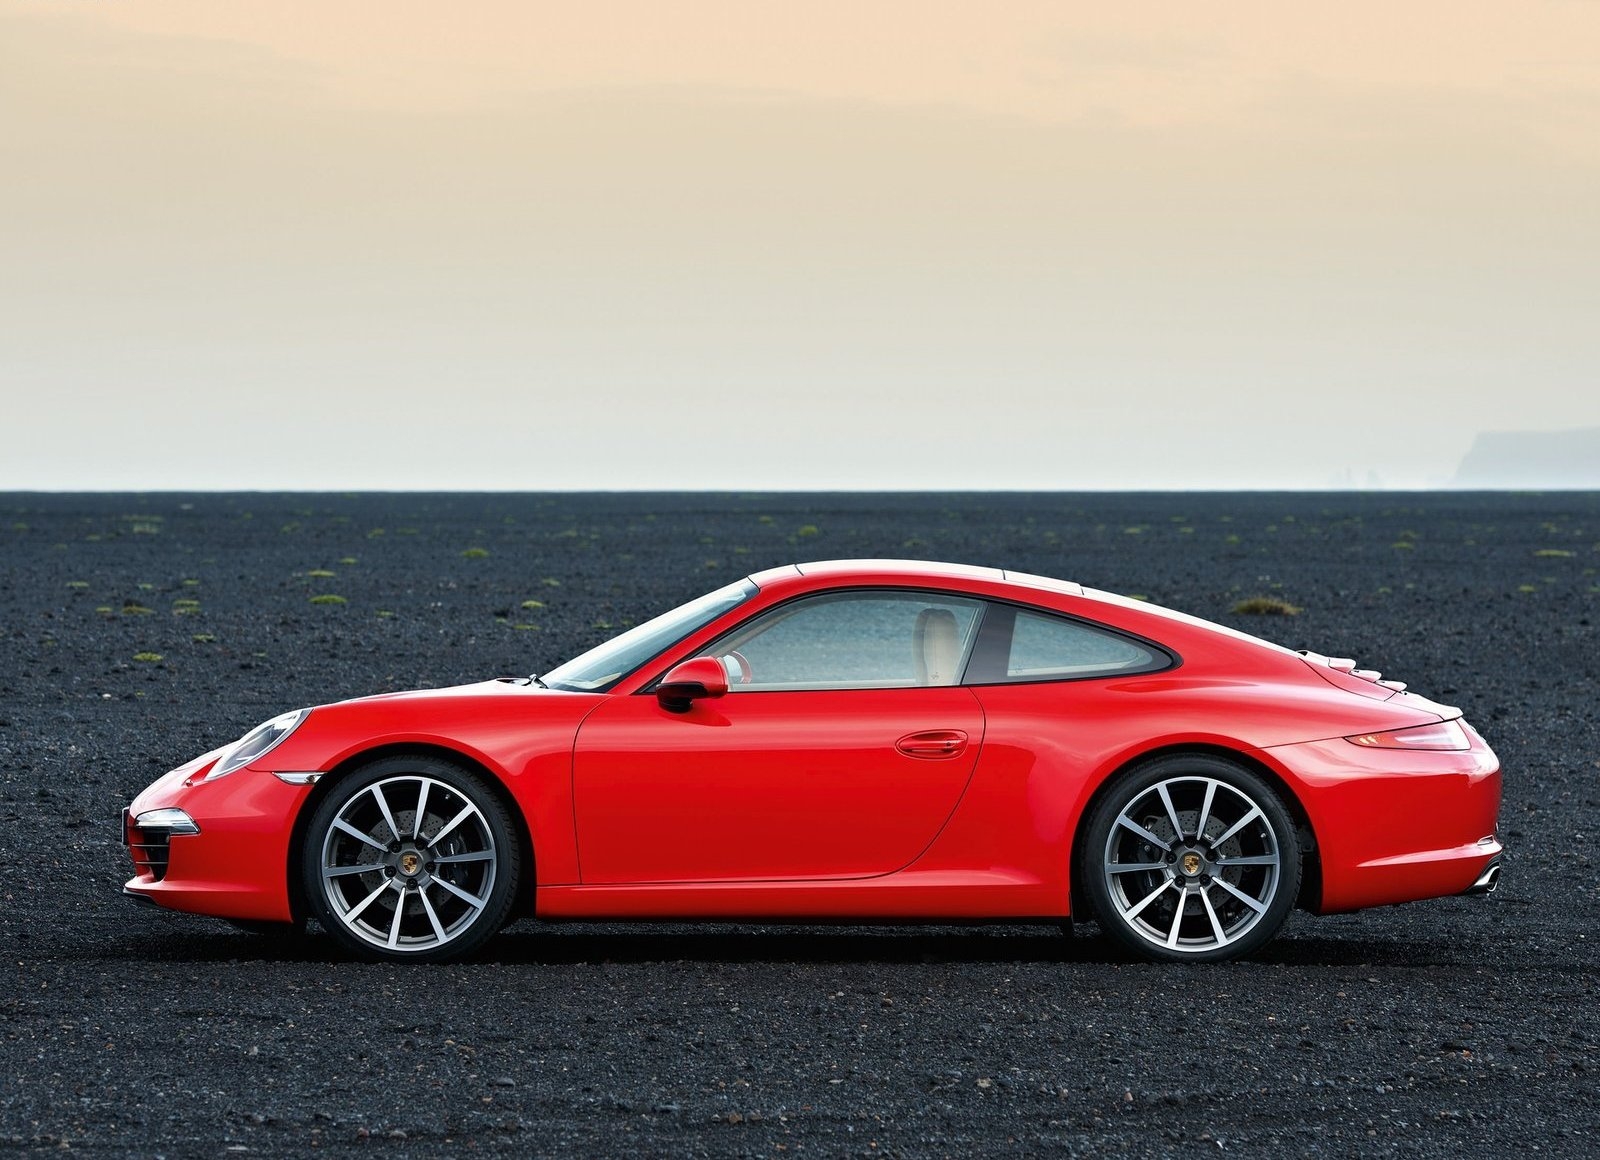 Best Car Models Amp All About Cars 2013 Porsche 911 Carrera